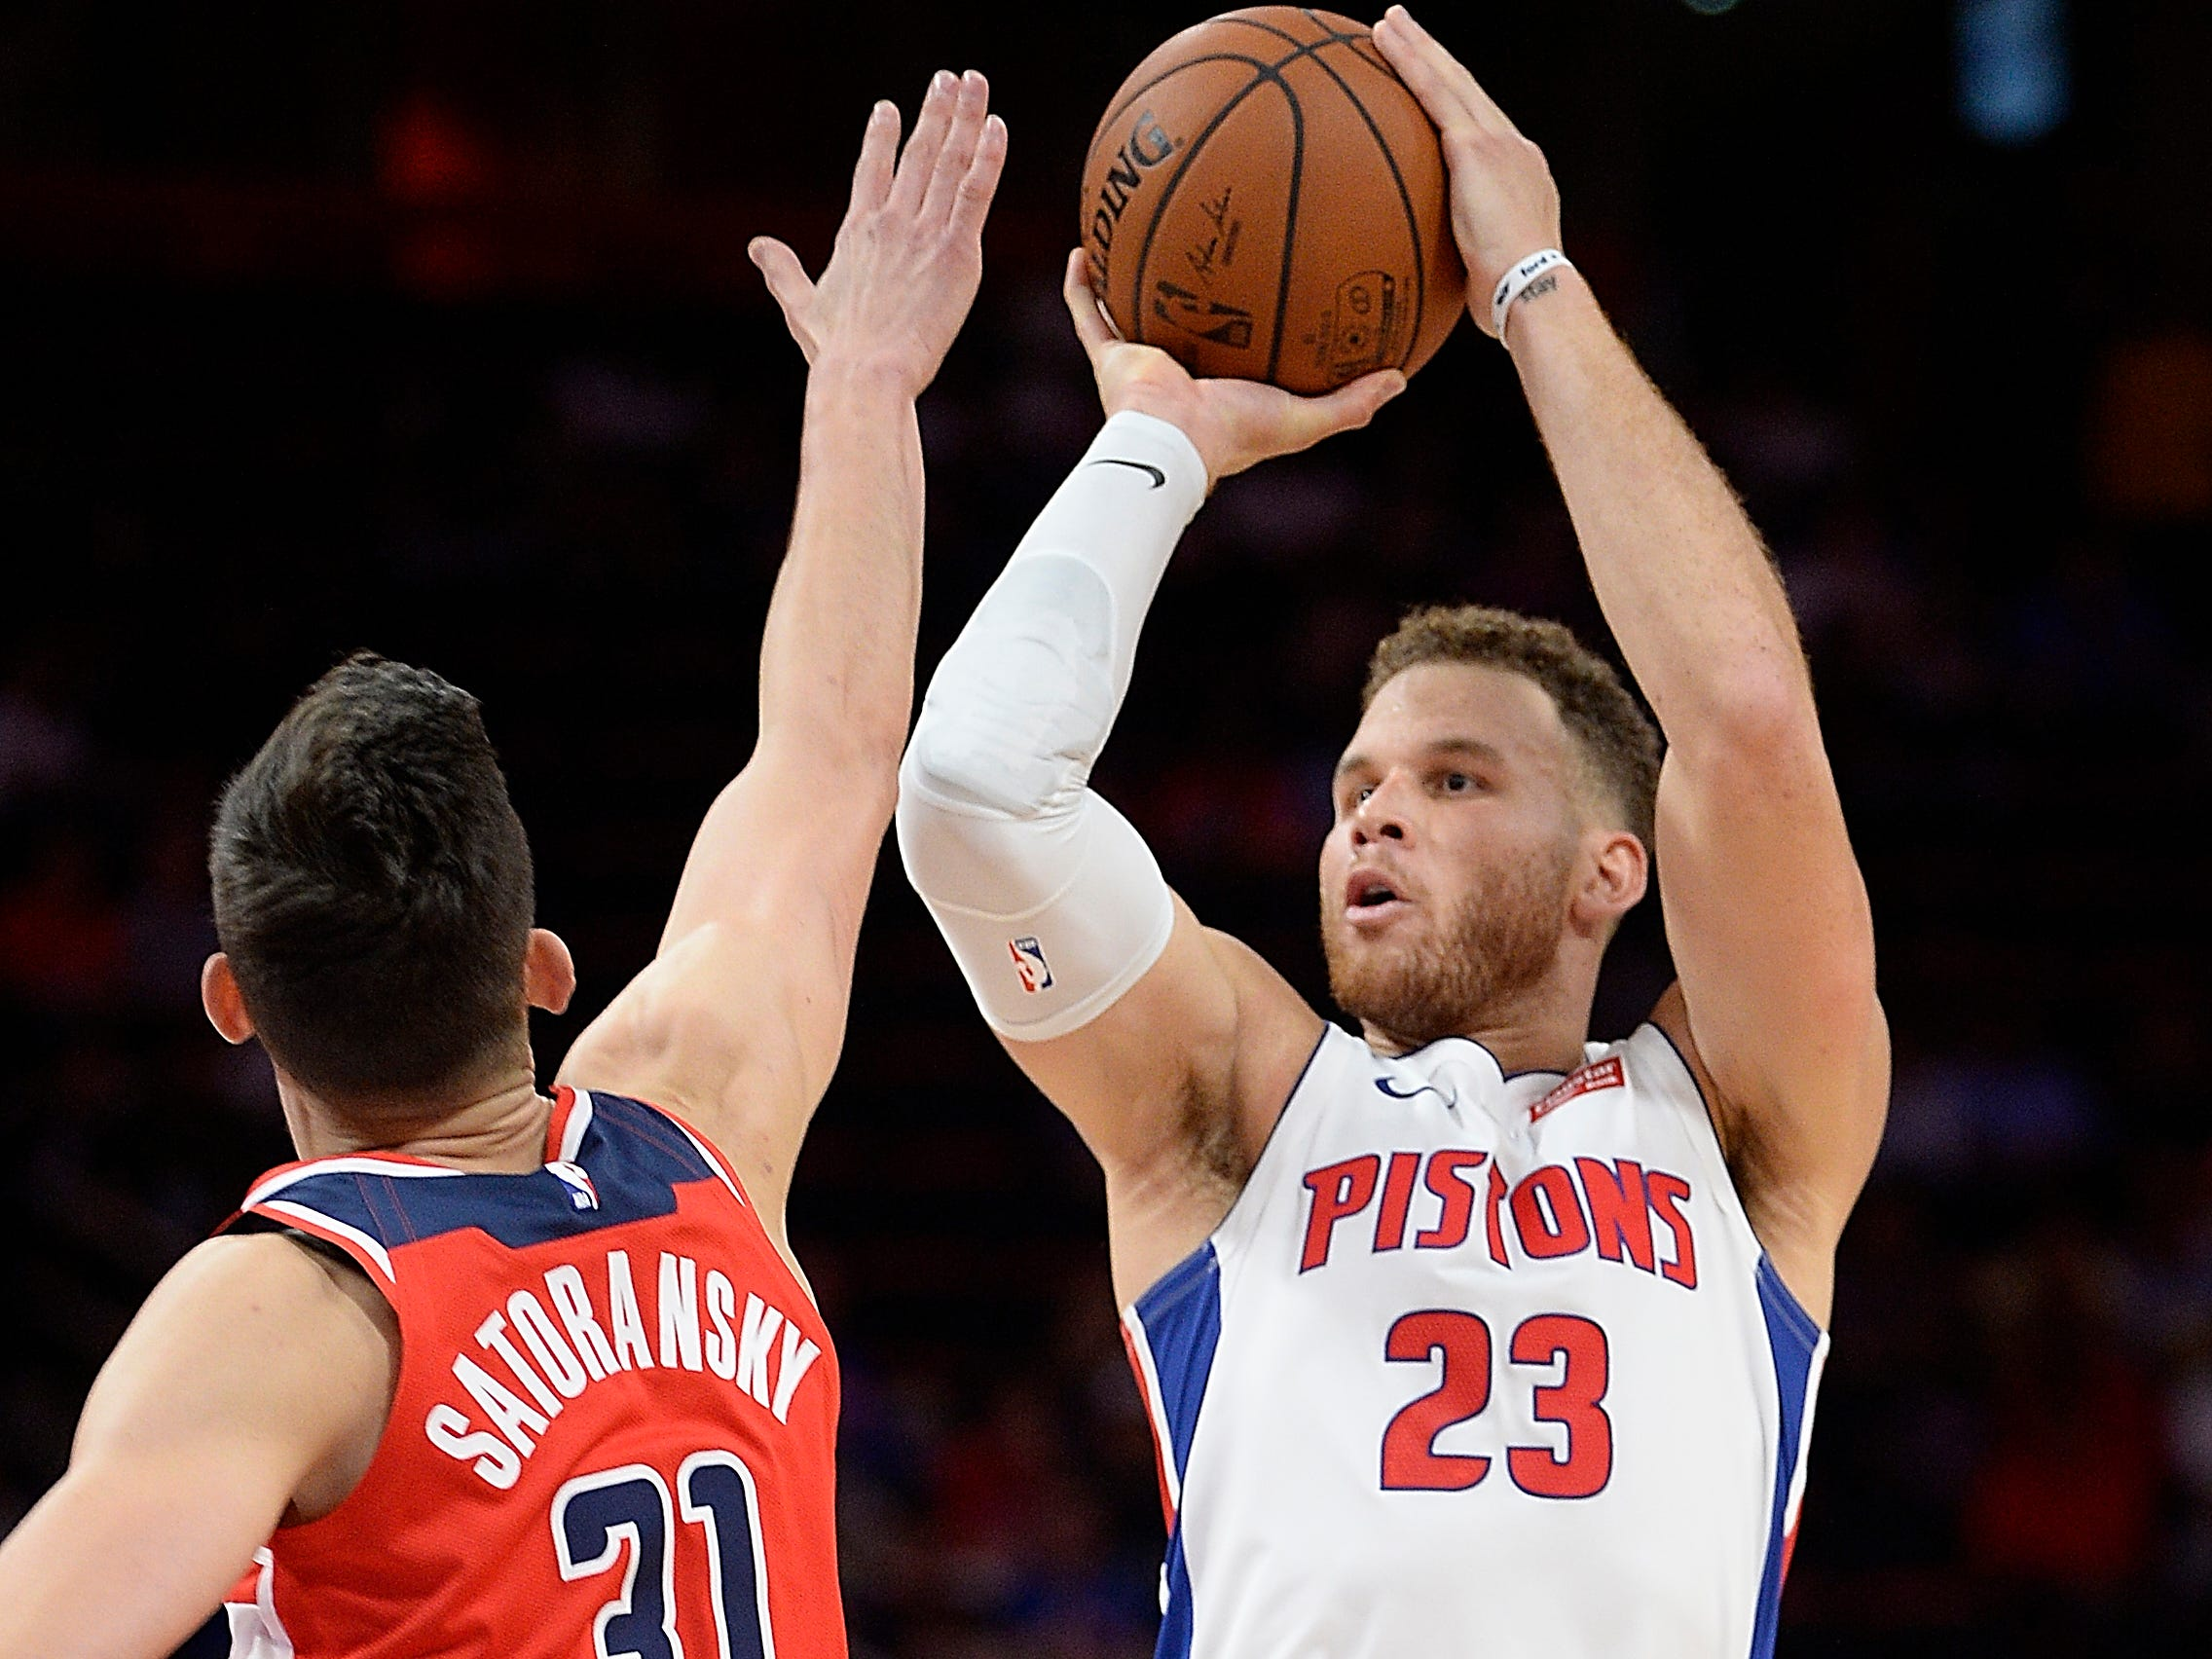 Pistons' Blake Griffin shoots over Wizards' Tomas Satoransky in the second quarter.